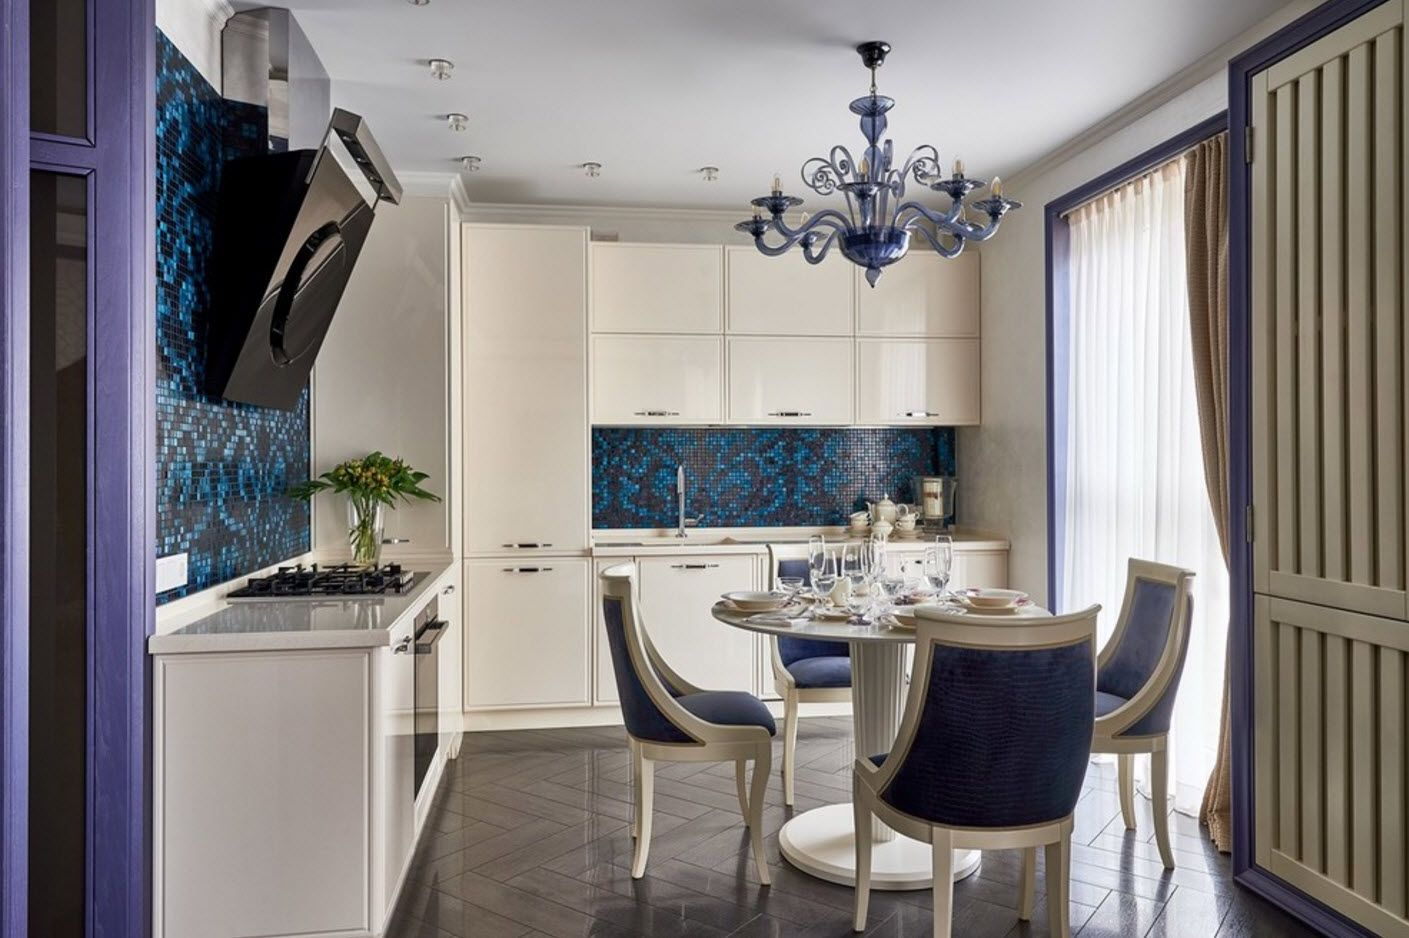 Classic interior with modern accessories looks organic